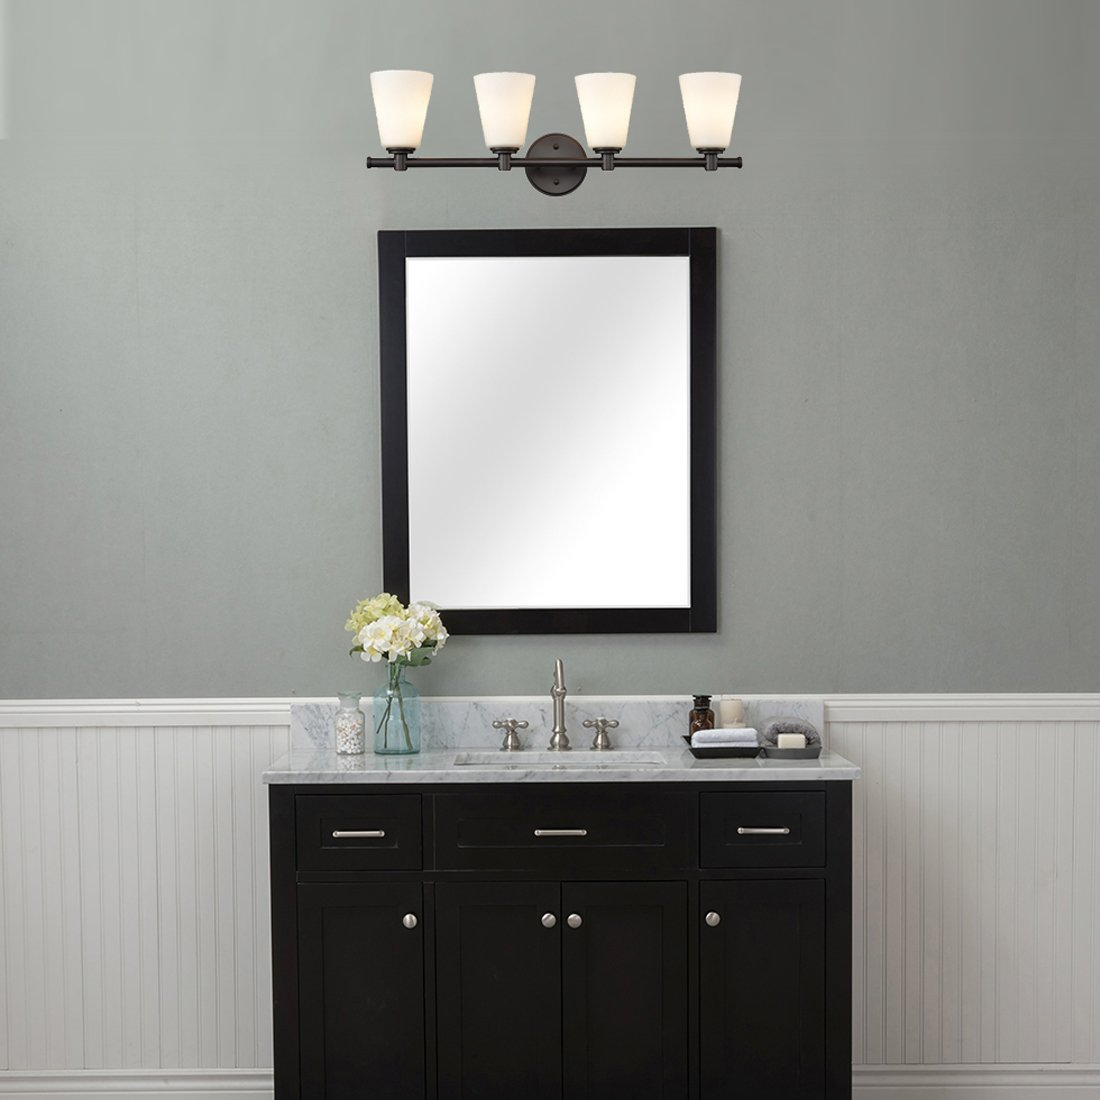 AXILAND Vanity Lighting 4 Light Oil Rubbed Bronze Wall Sconce with Opal Glass Shade by AXILAND (Image #3)